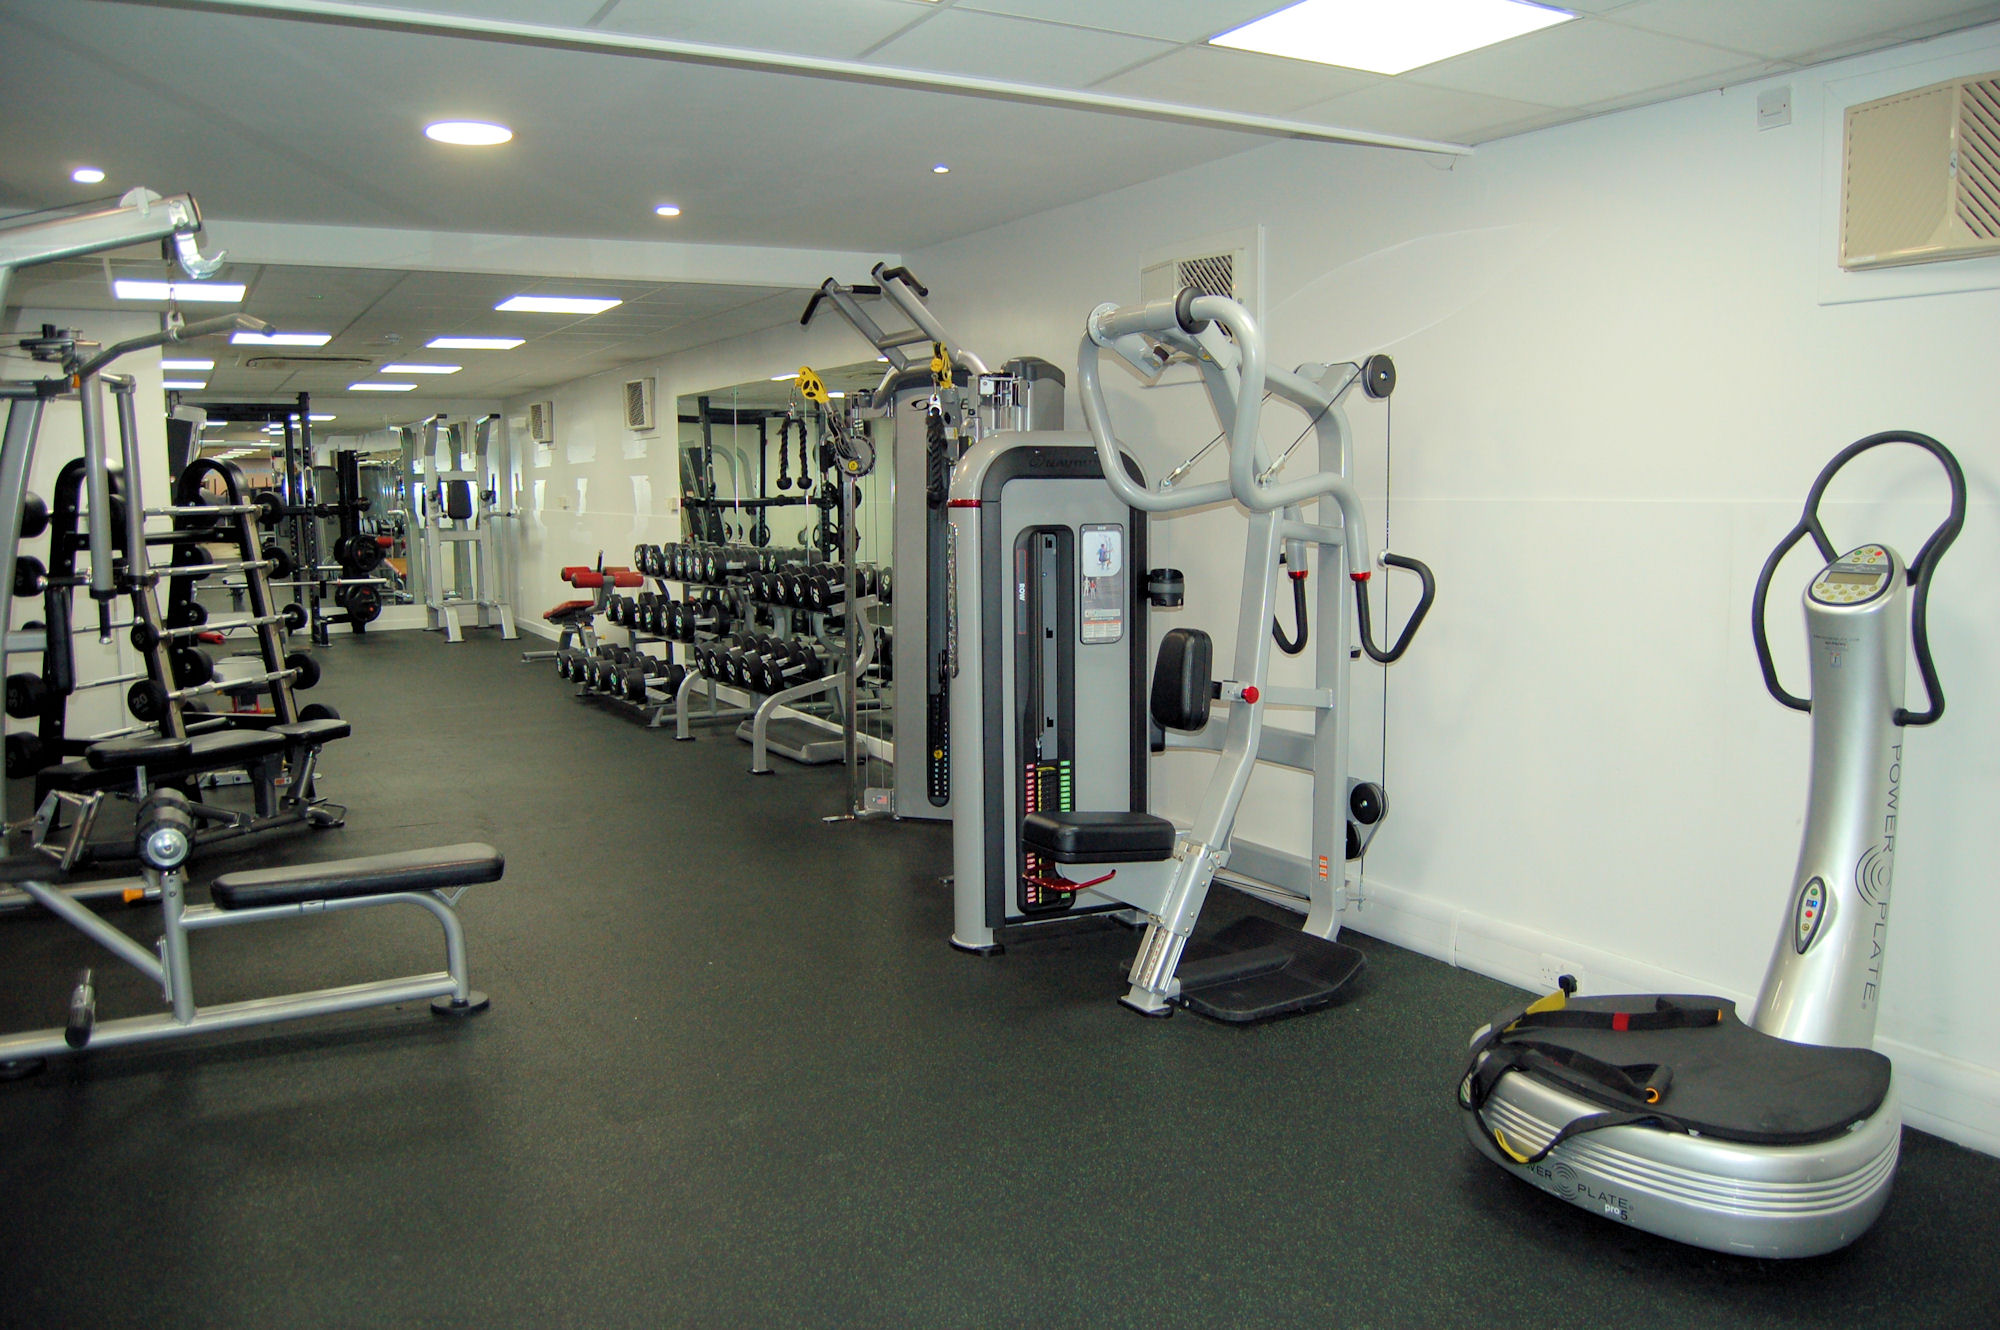 image of Fitness equipment and weights at Vale Pool